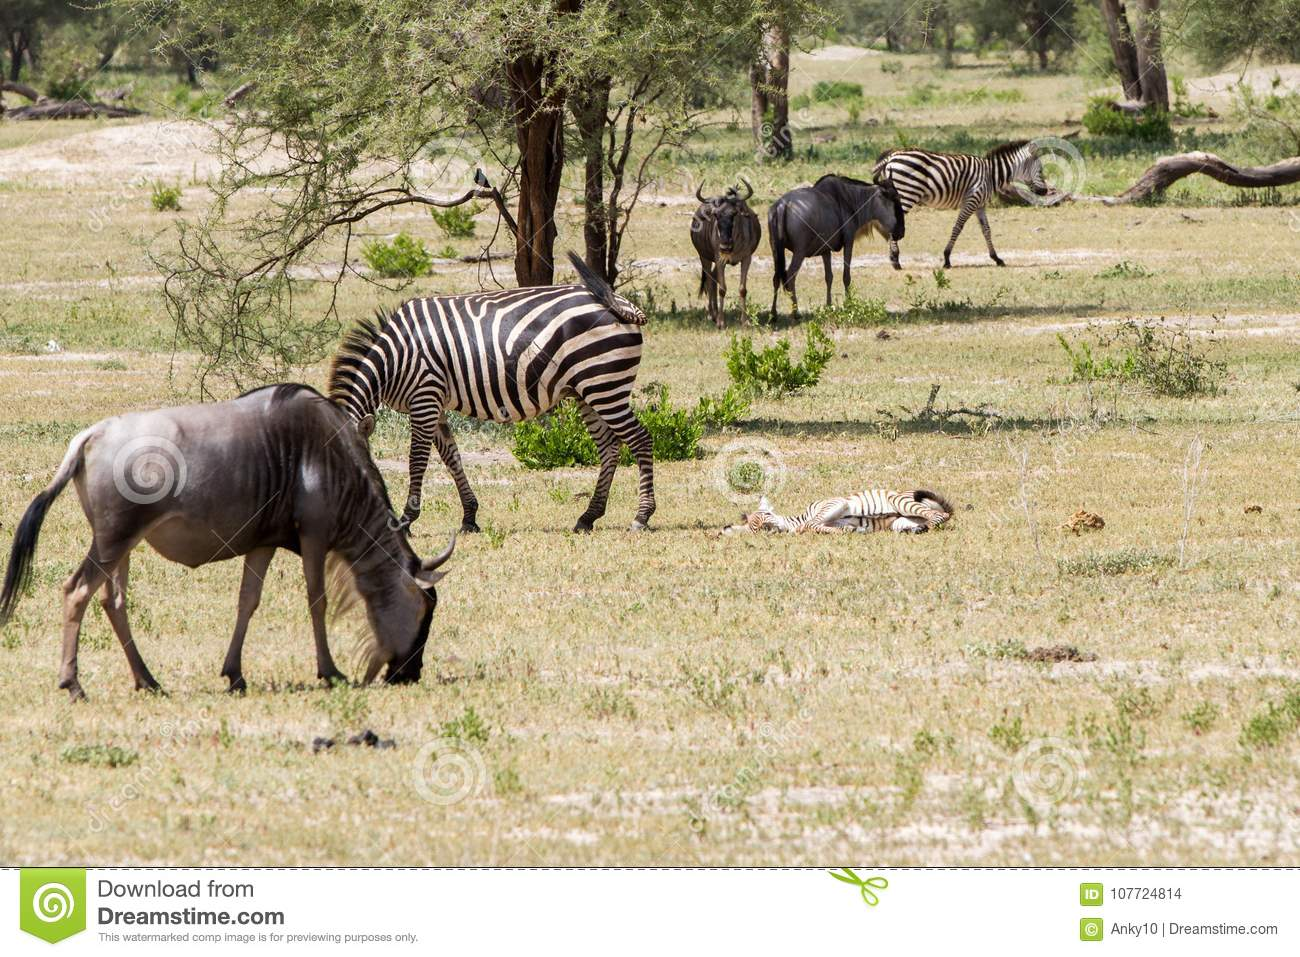 Blue wildebeest and zebras in the field